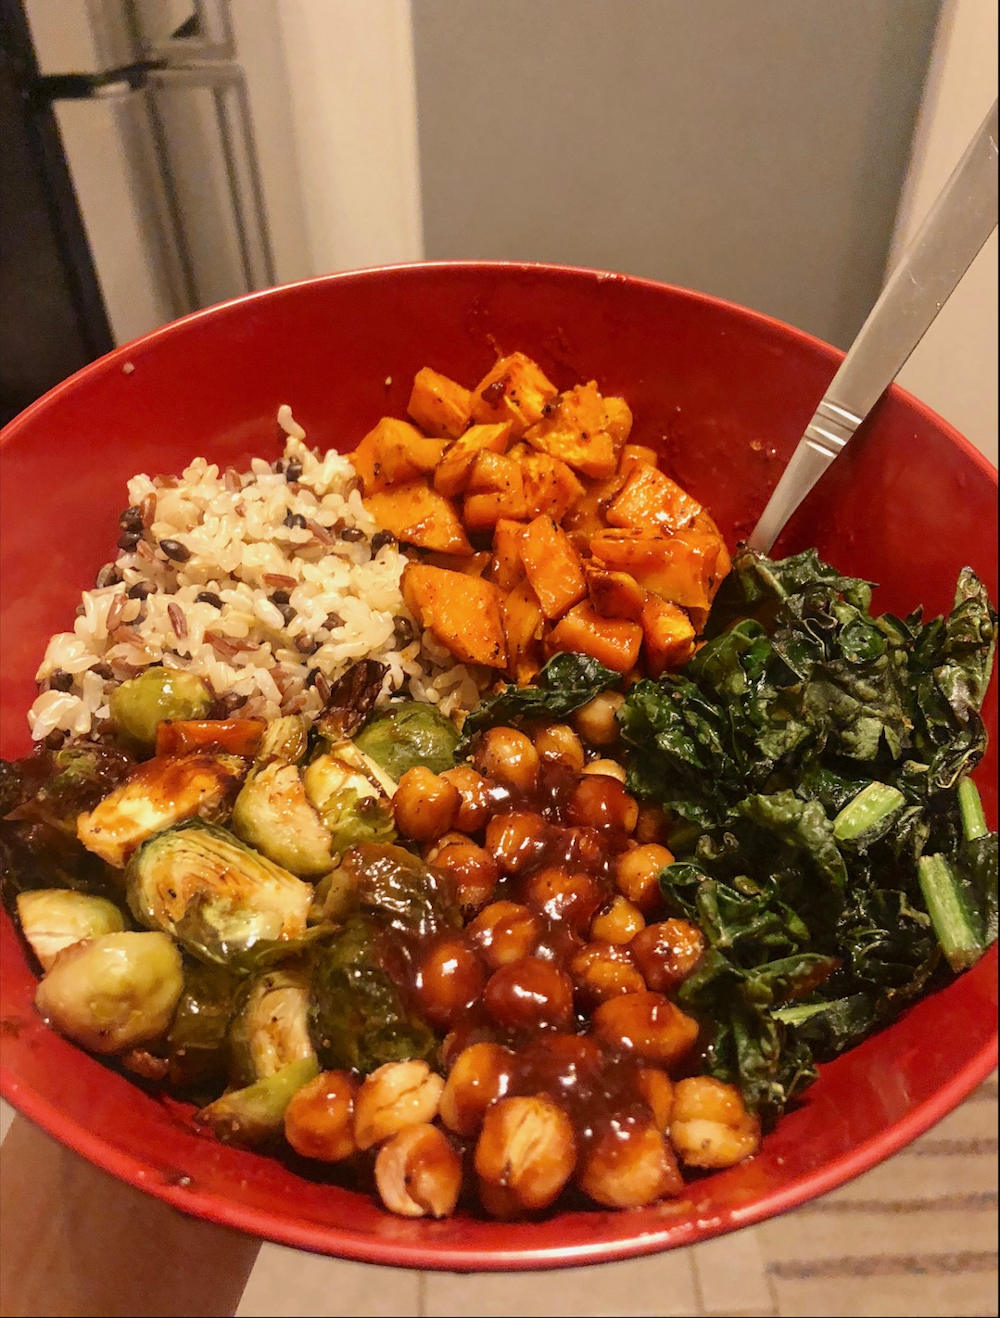 Final Product for Sweet Potato Brussel Sprout Bowls